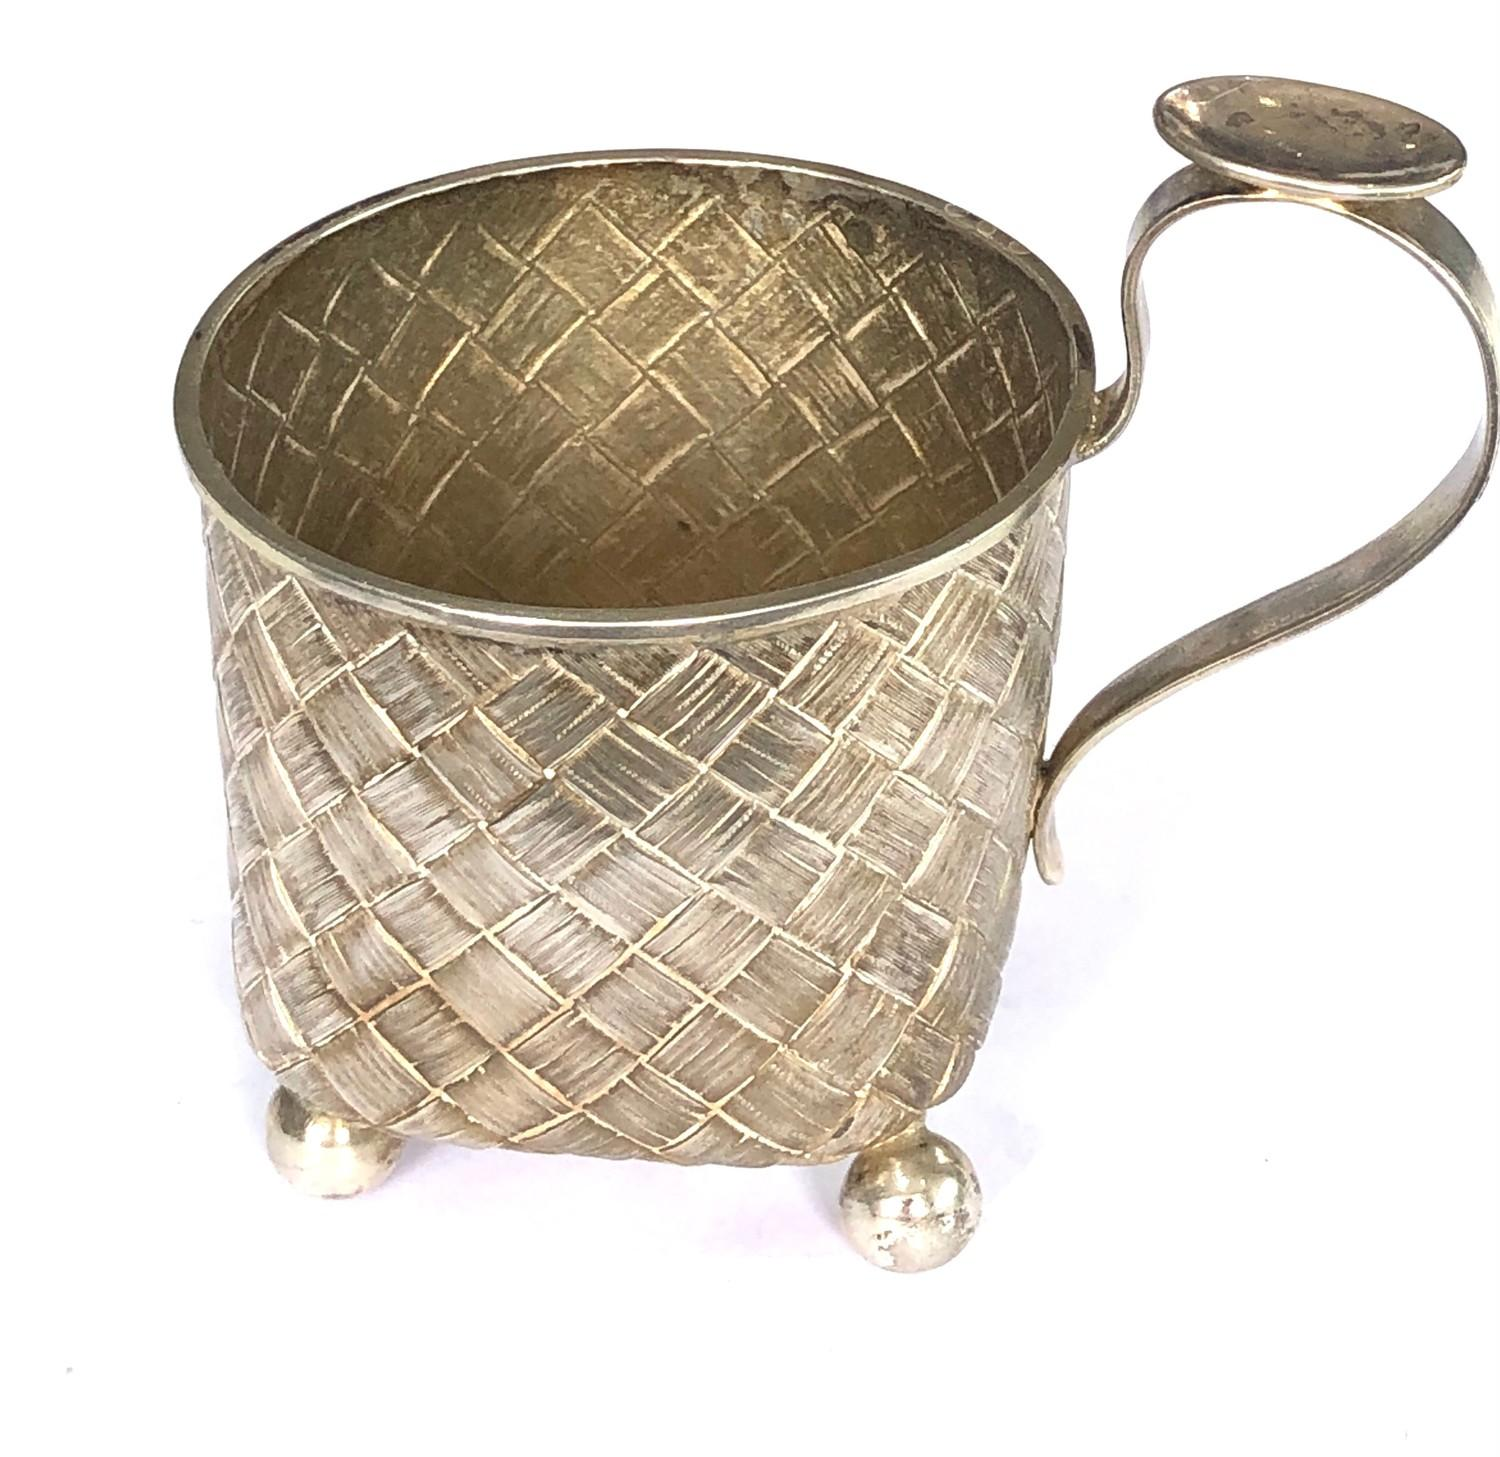 Antique 1877 Russian silver cup lattice work design measures approx height 10cm cup dia 7.5cm full